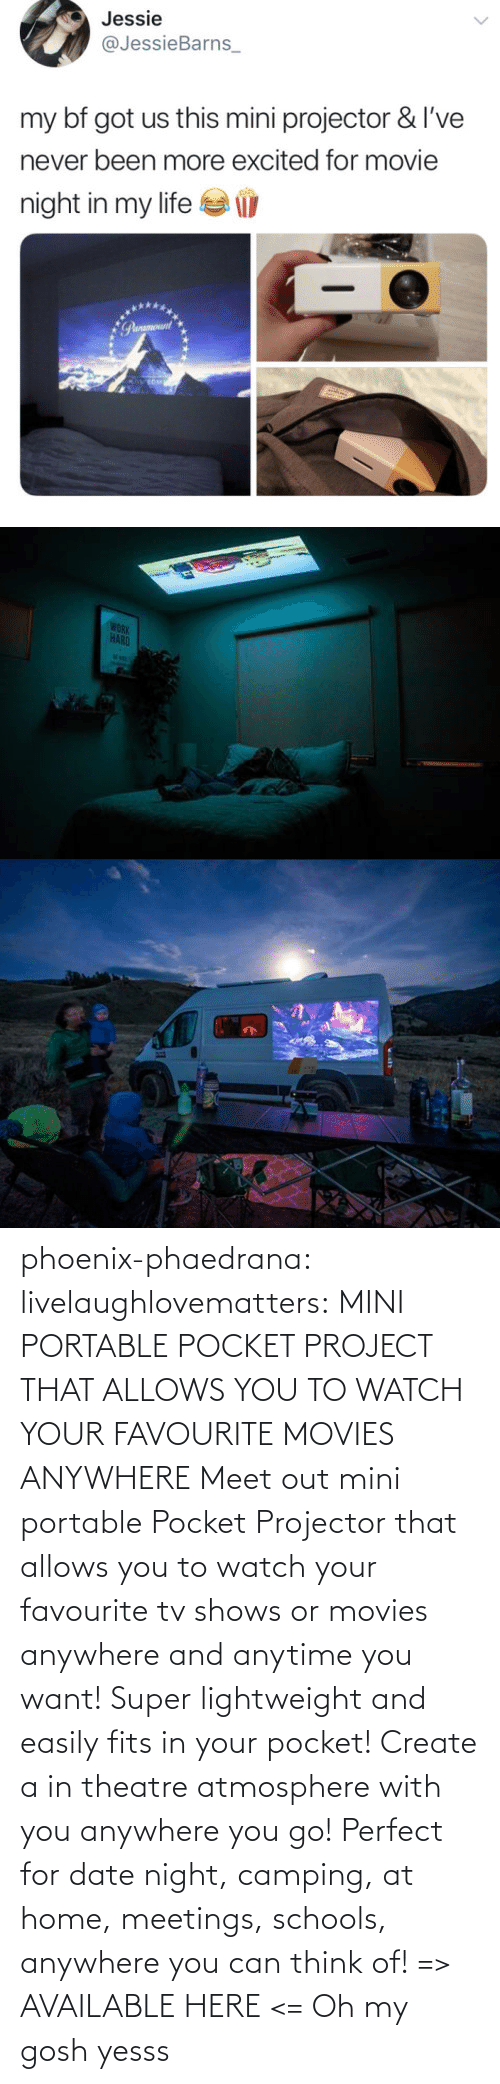 Date: phoenix-phaedrana: livelaughlovematters:  MINI PORTABLE POCKET PROJECT THAT ALLOWS YOU TO WATCH YOUR FAVOURITE MOVIES ANYWHERE Meet out mini portable Pocket Projector that allows you to watch your favourite tv shows or movies anywhere and anytime you want! Super lightweight and easily fits in your pocket! Create a in theatre atmosphere with you anywhere you go! Perfect for date night, camping, at home, meetings, schools, anywhere you can think of! => AVAILABLE HERE <=  Oh my gosh yesss